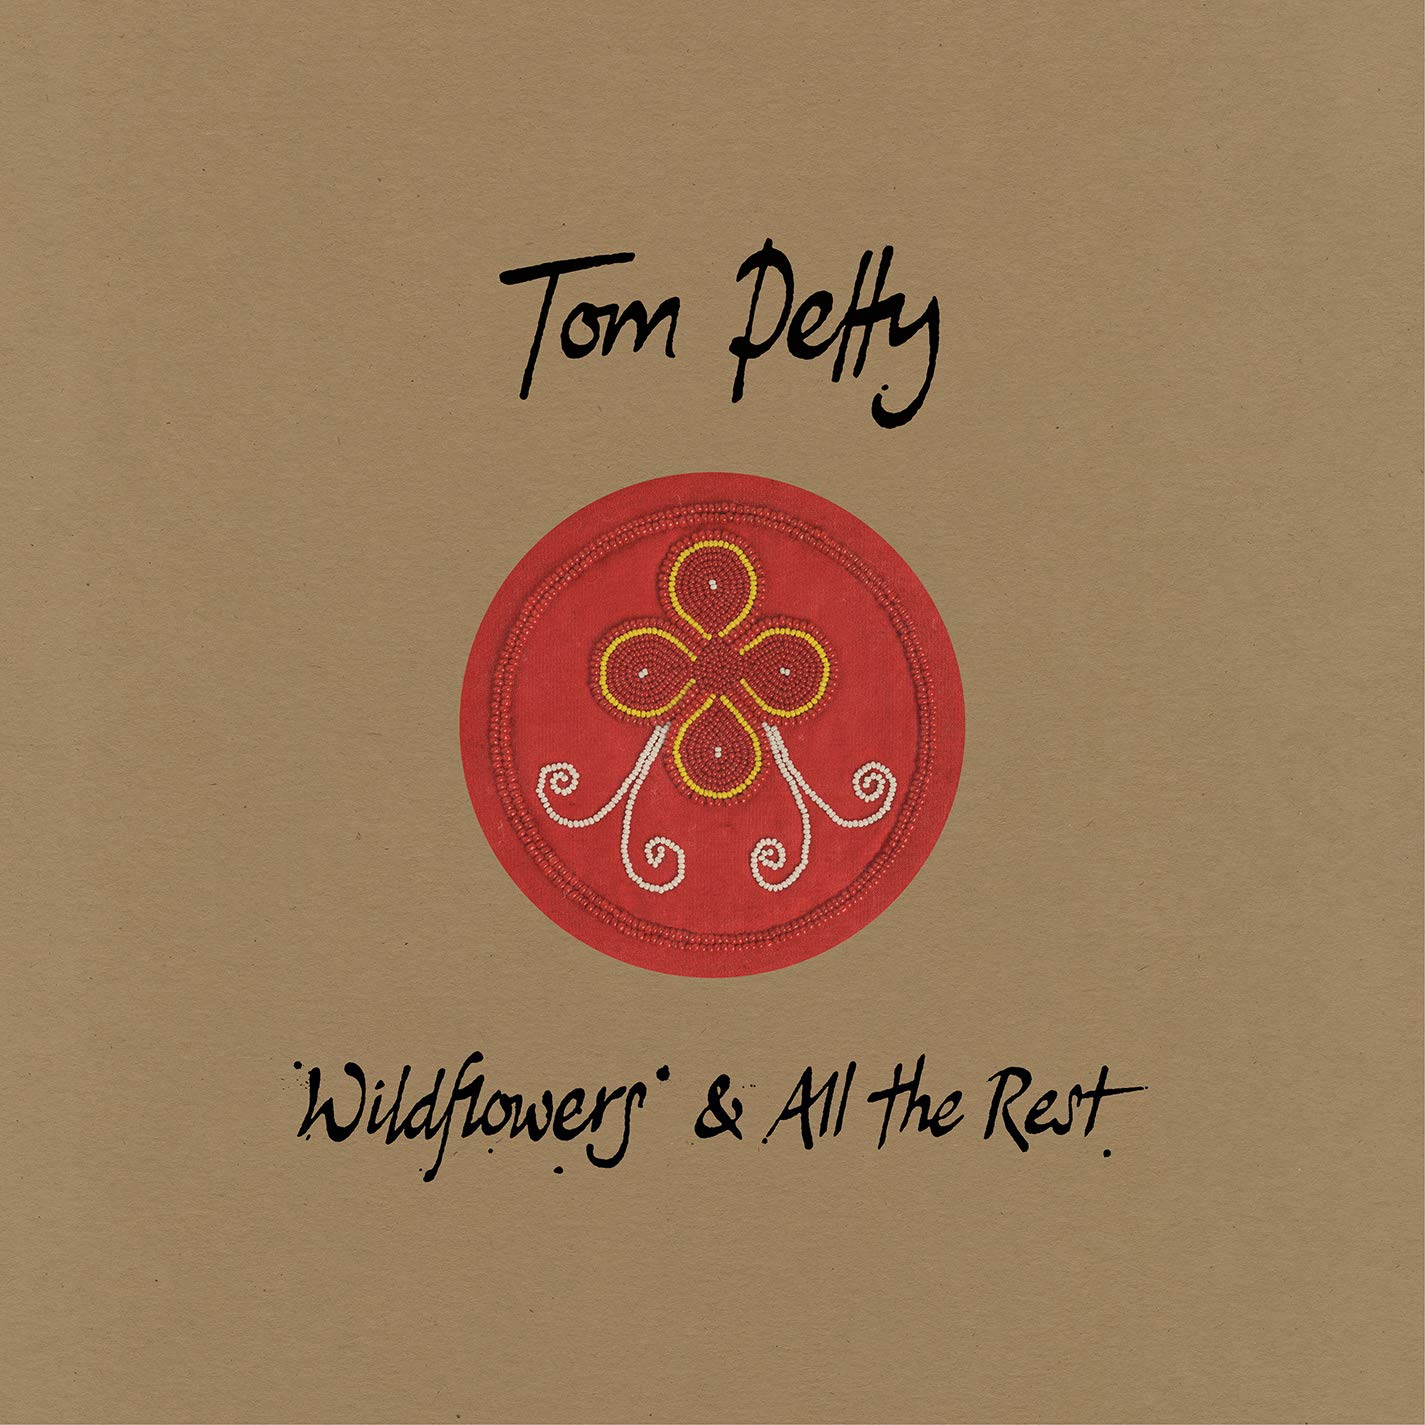 Tom Petty - Wildflowers & All the Rest Deluxe Edition (4 CD) - Amazon.com  Music